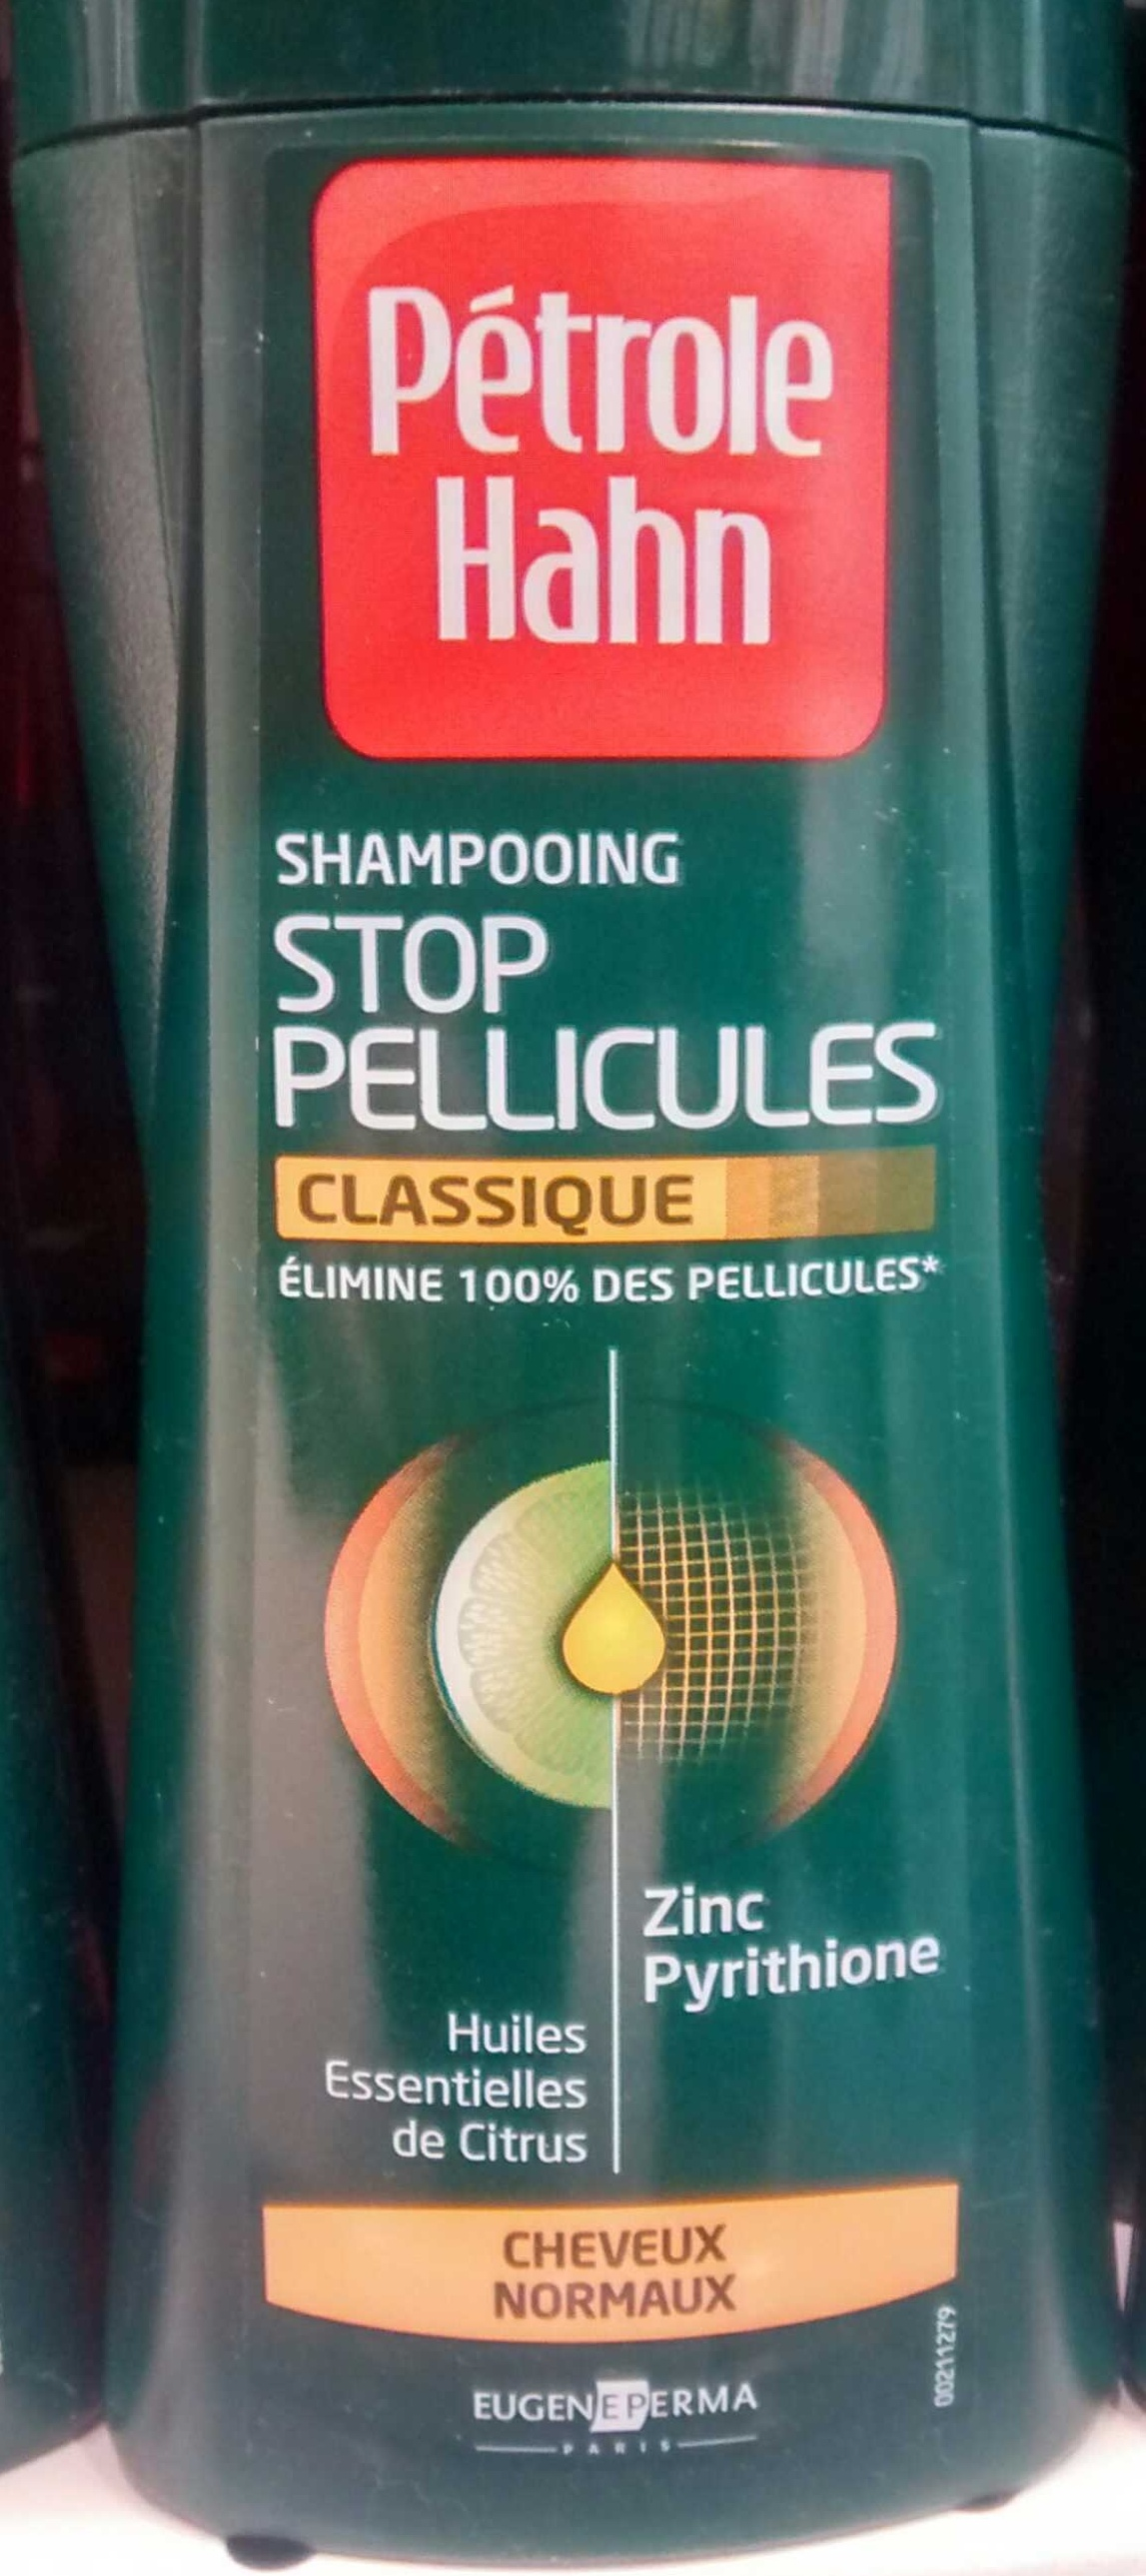 Shampooing stop pellicules classique, cheveux normaux - Product